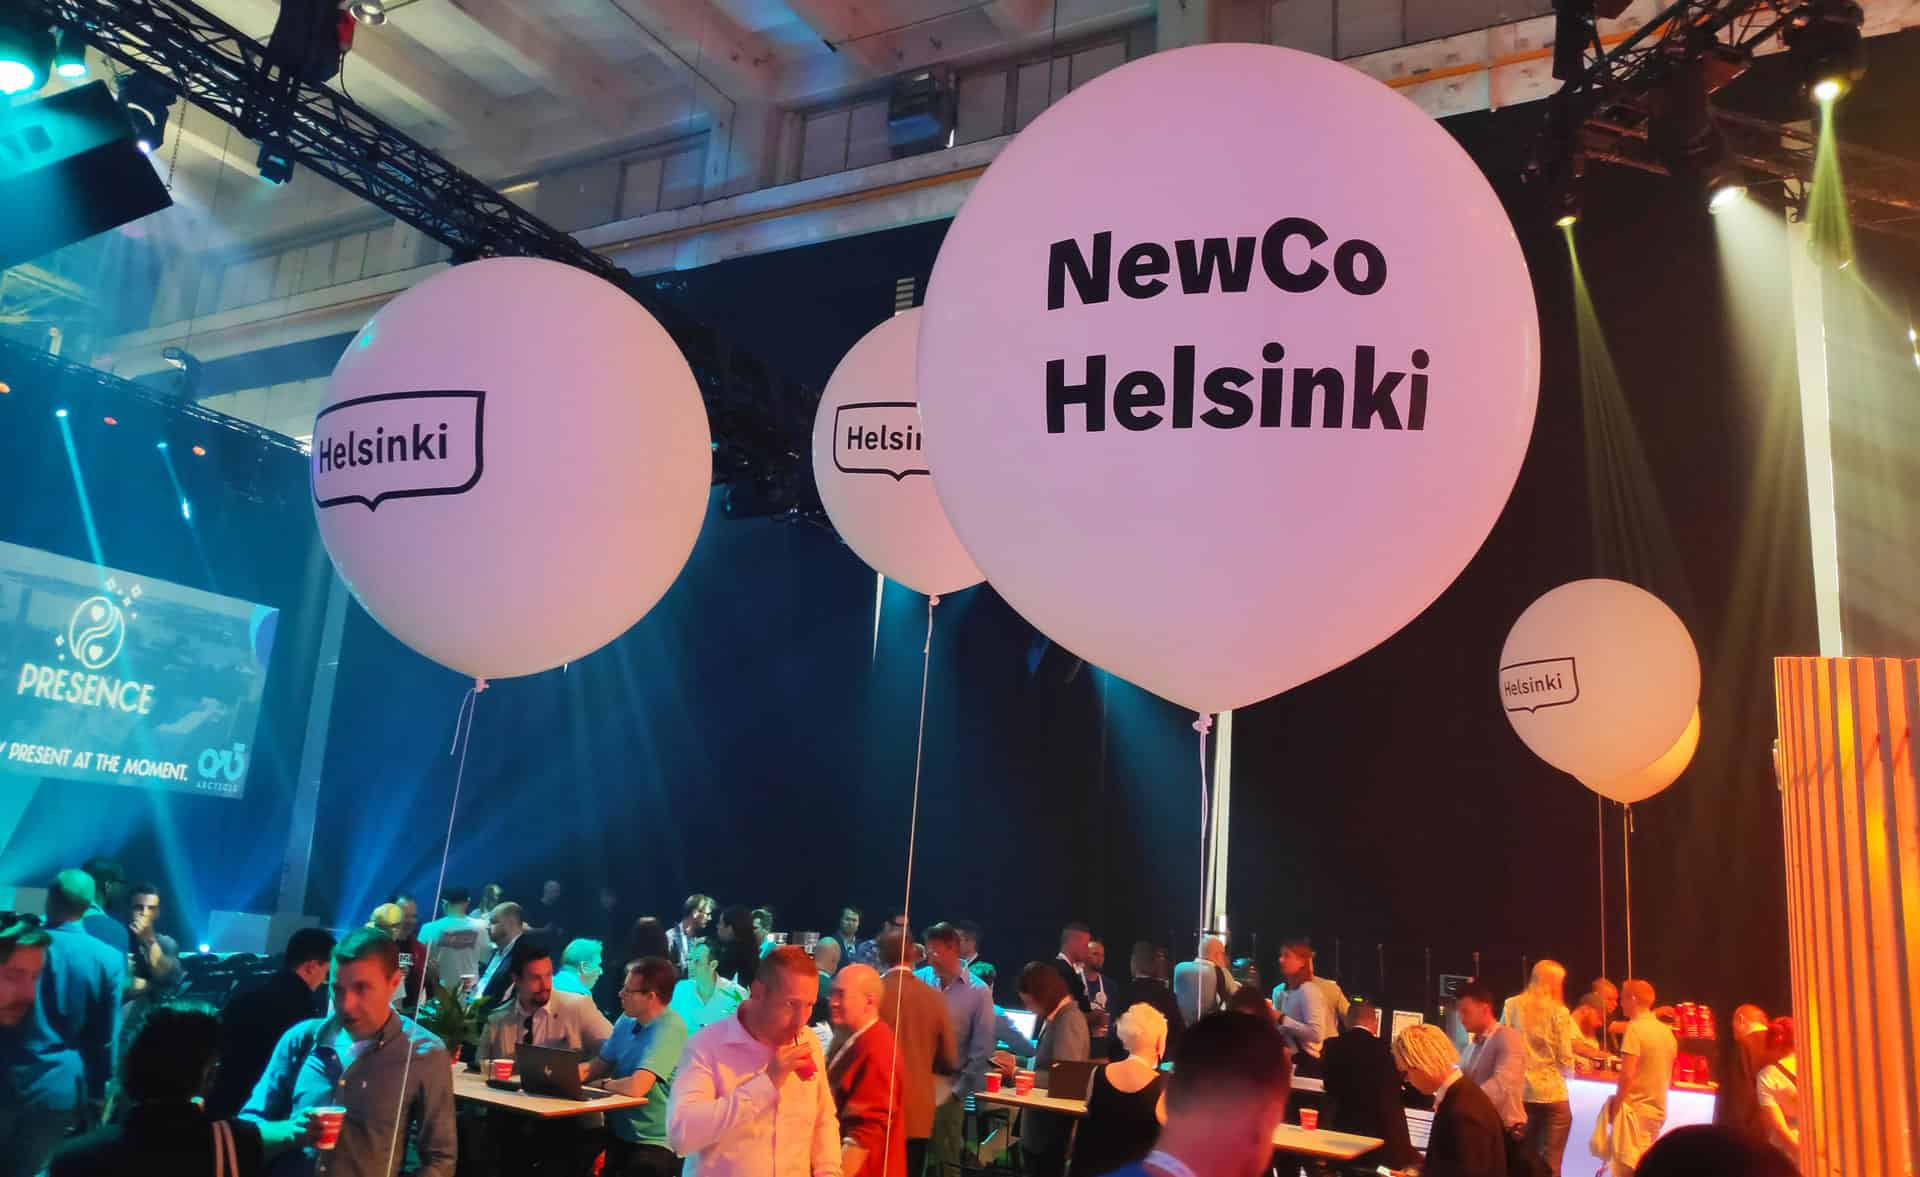 Big balloons with the logos of the City of Helsinki and NewCo Helsinki, at an event.